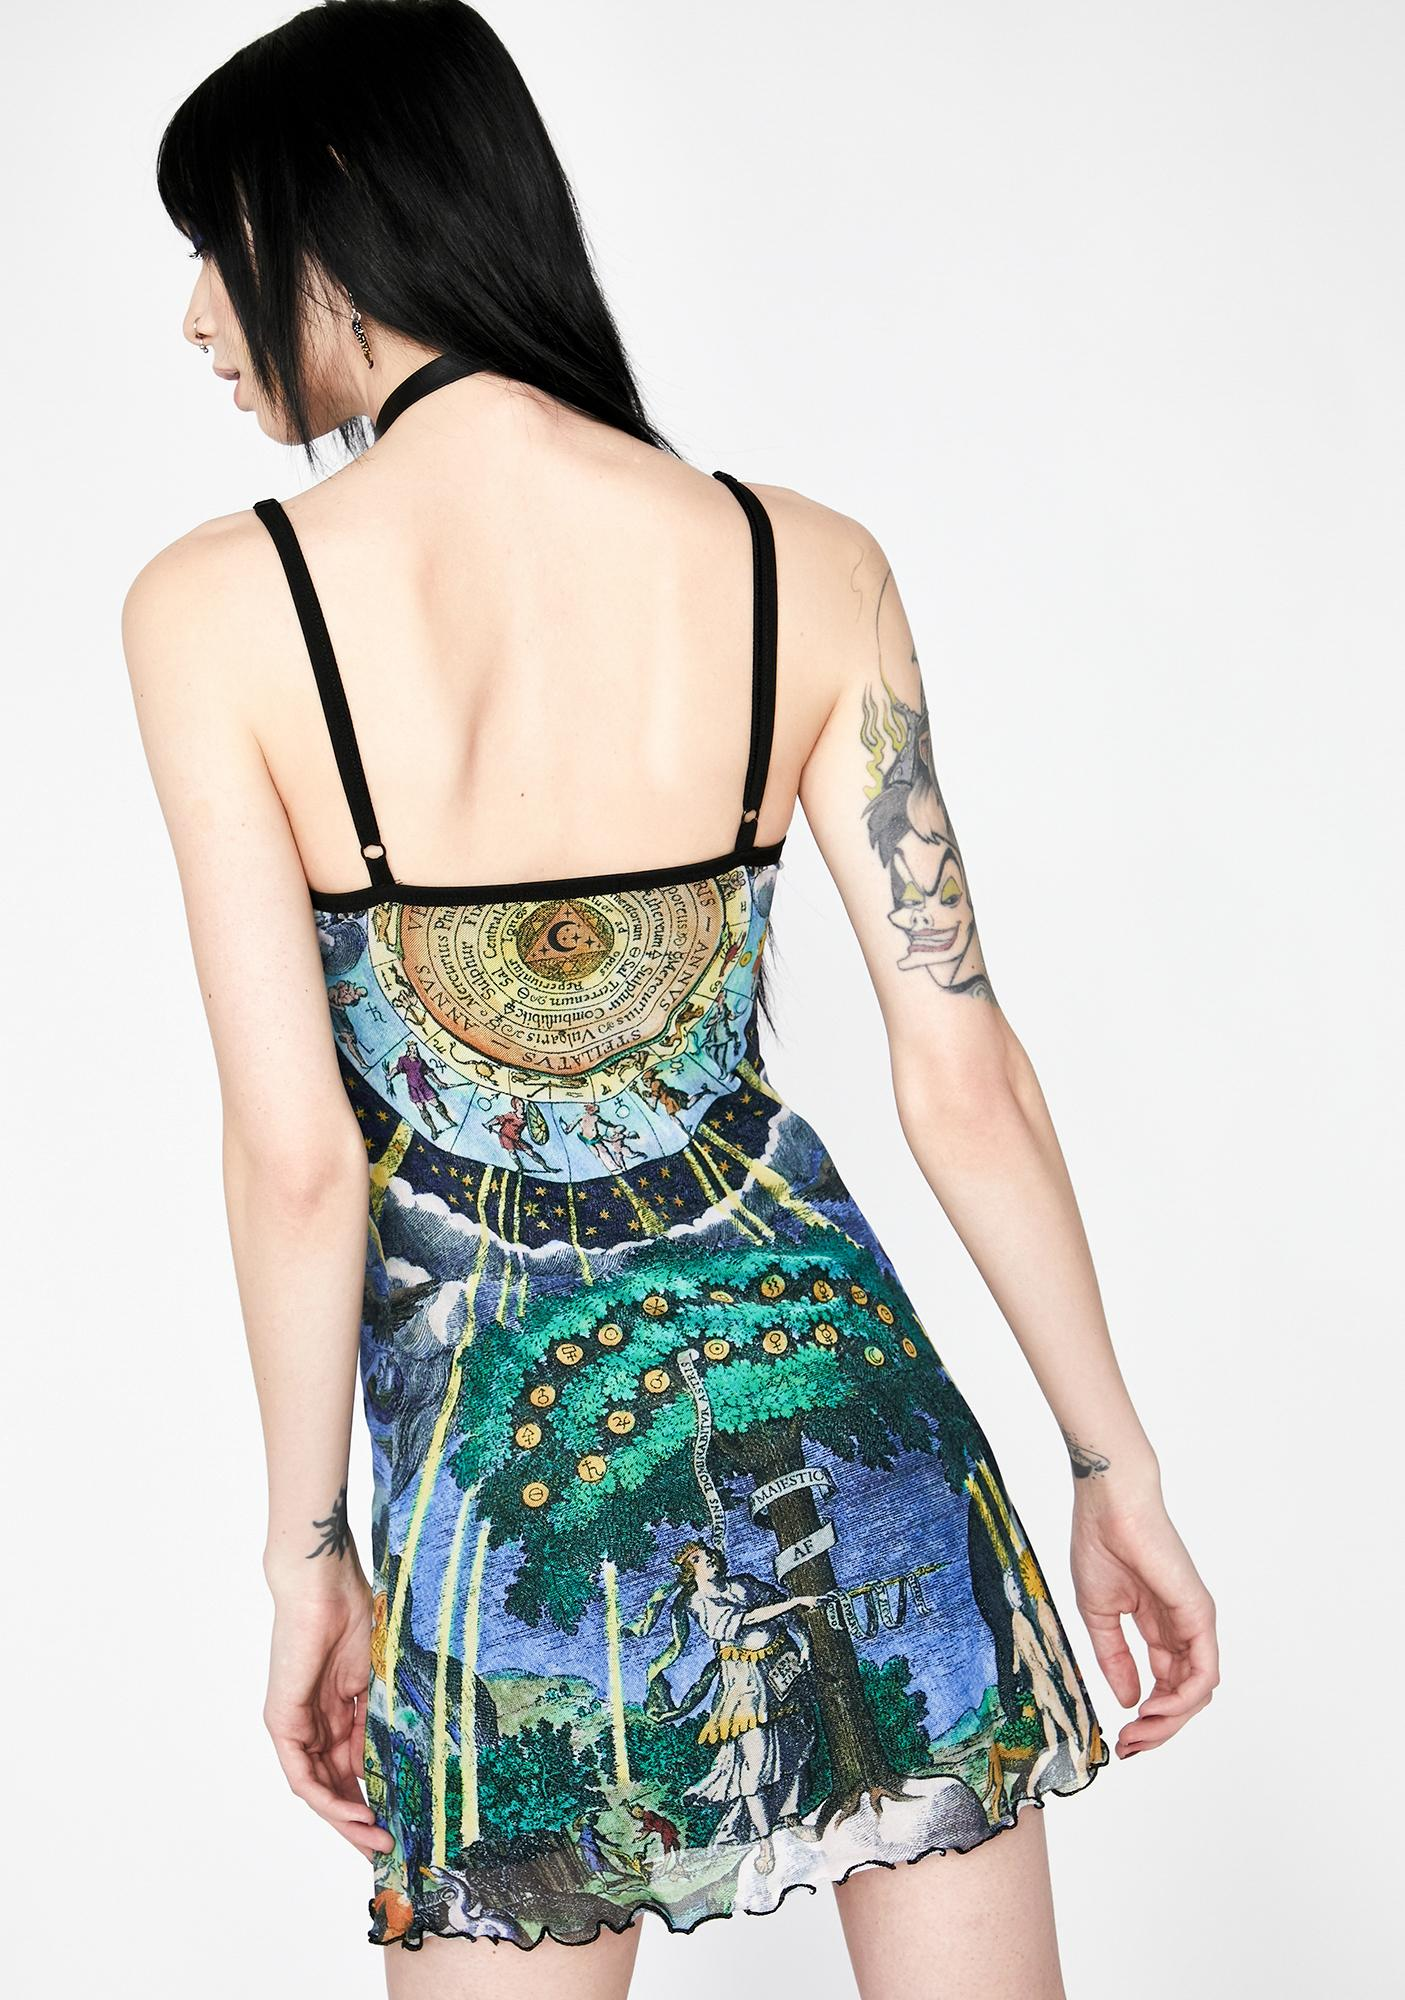 HOROSCOPEZ Illusions N' Delusions Mesh Dress